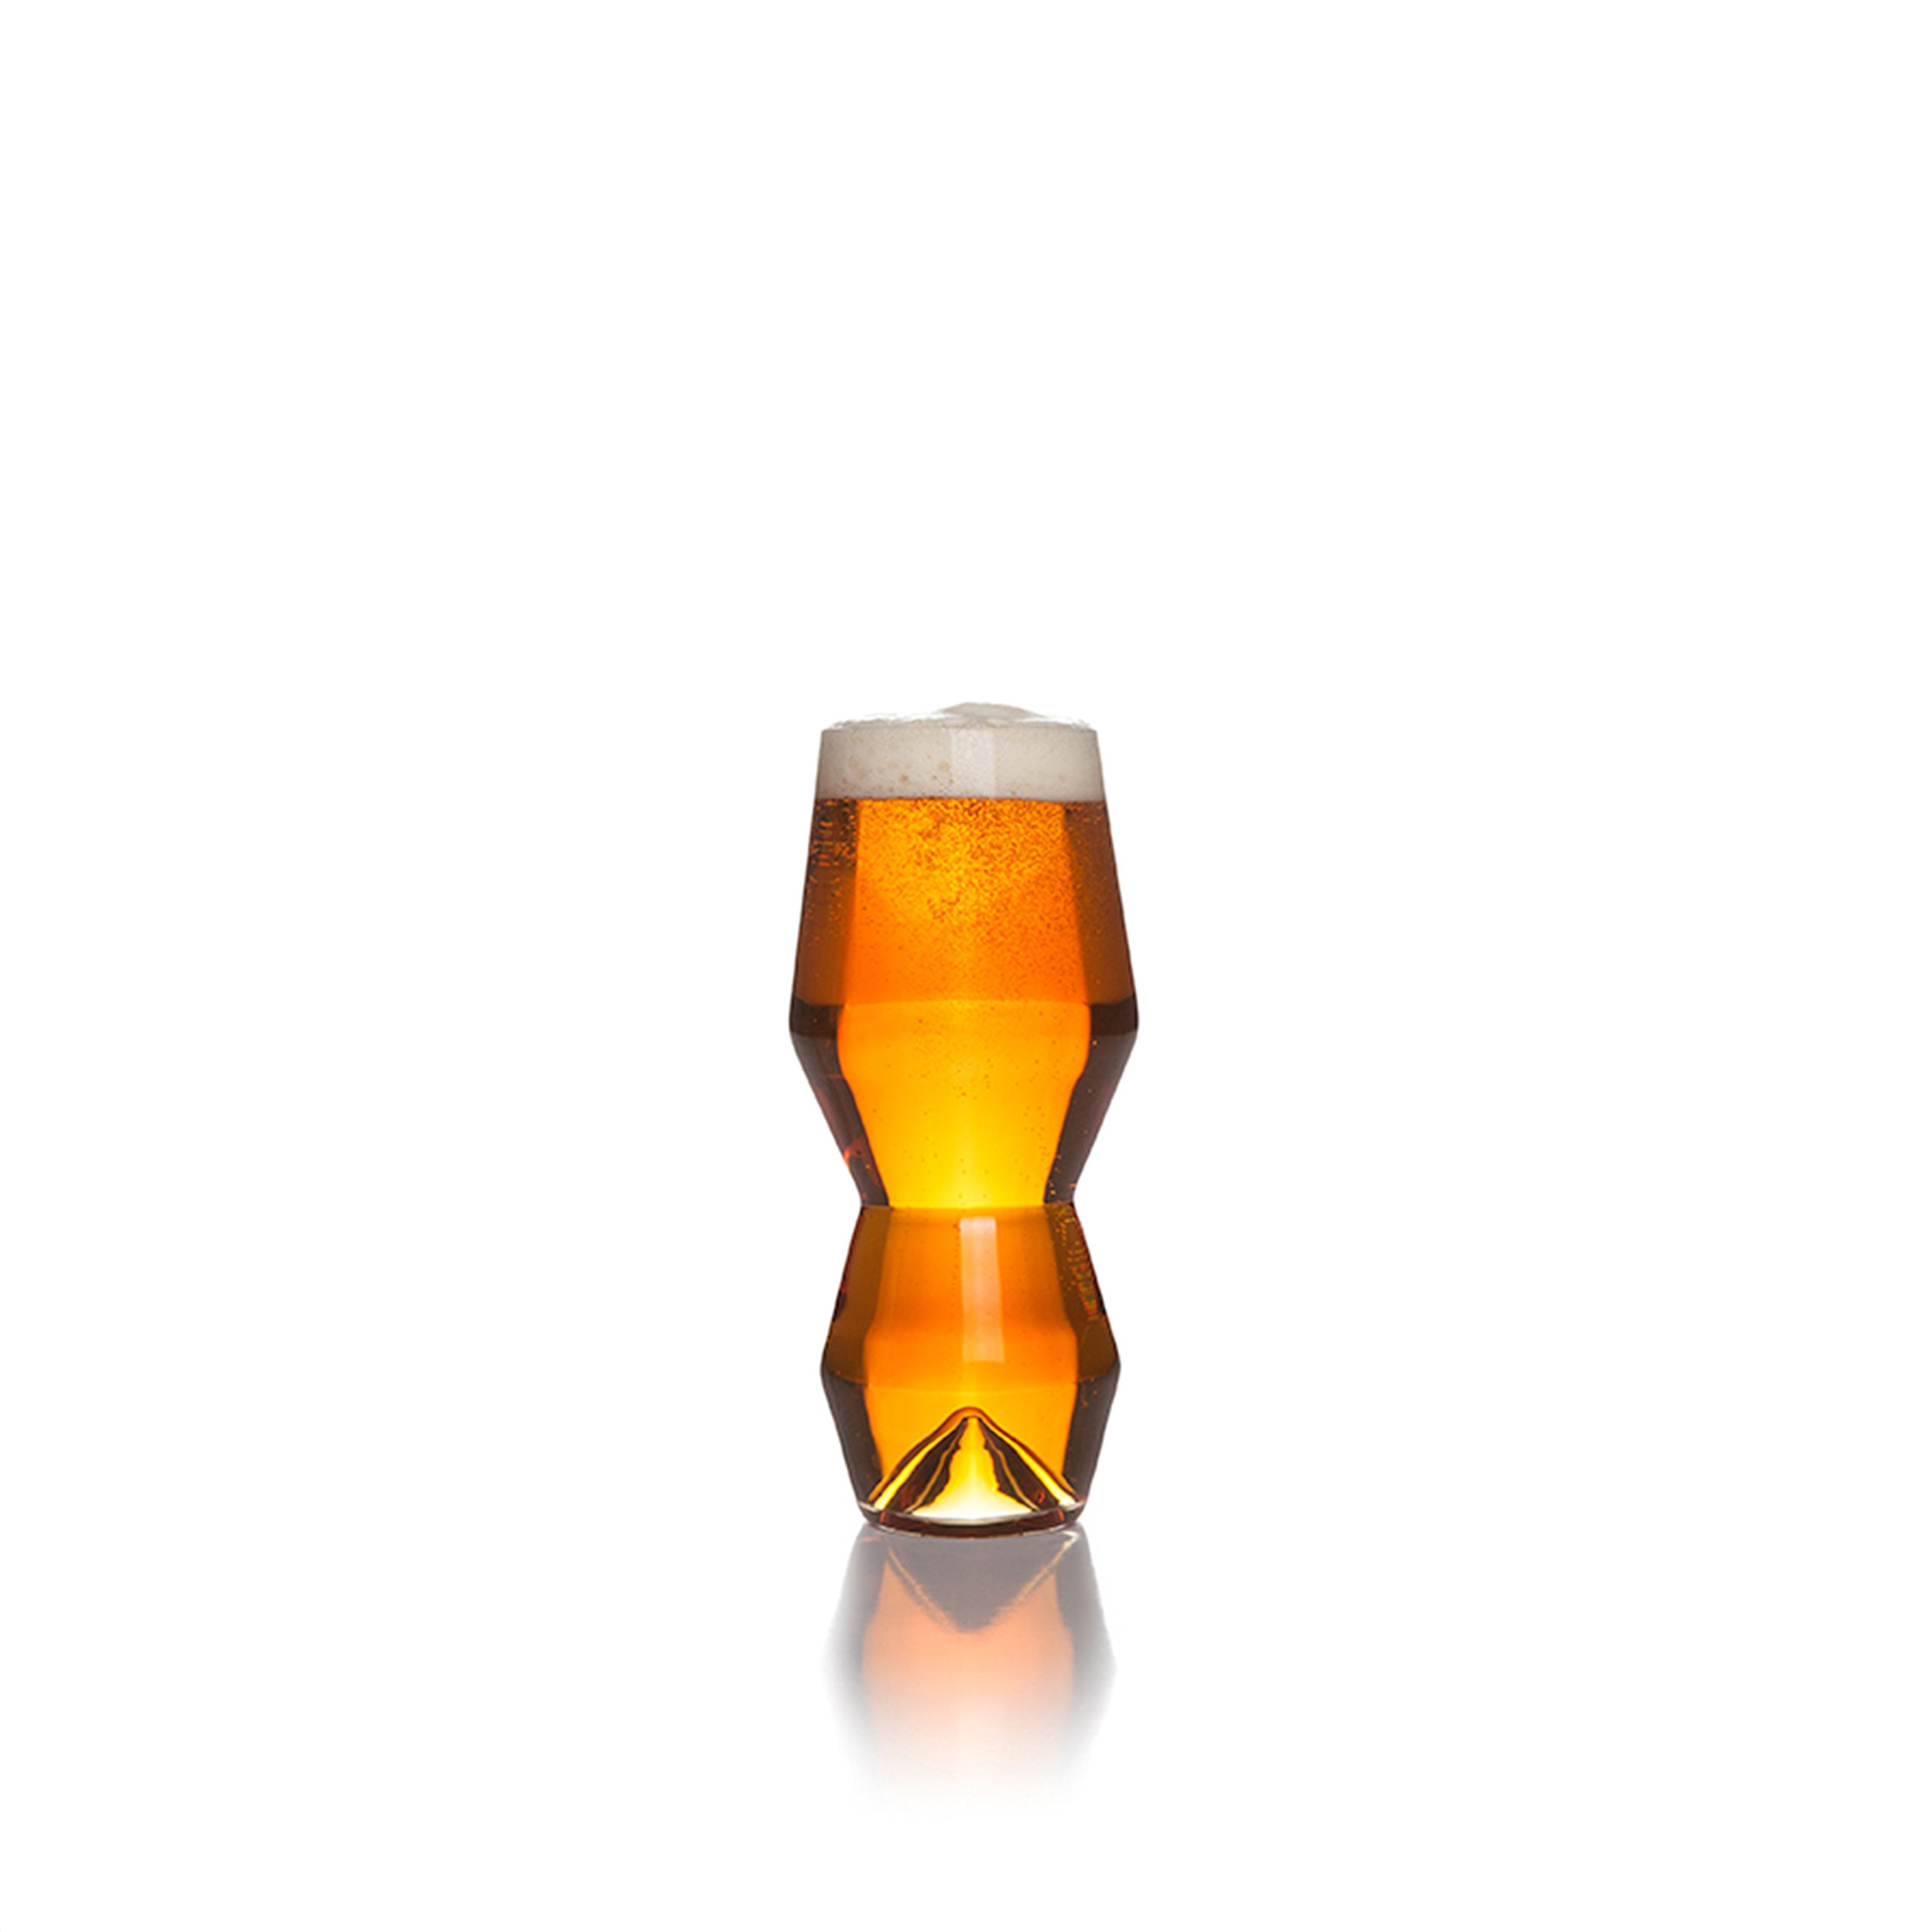 Sempli Monti-IPA Clear Beer Glasses, Set of 2 in Gift Box